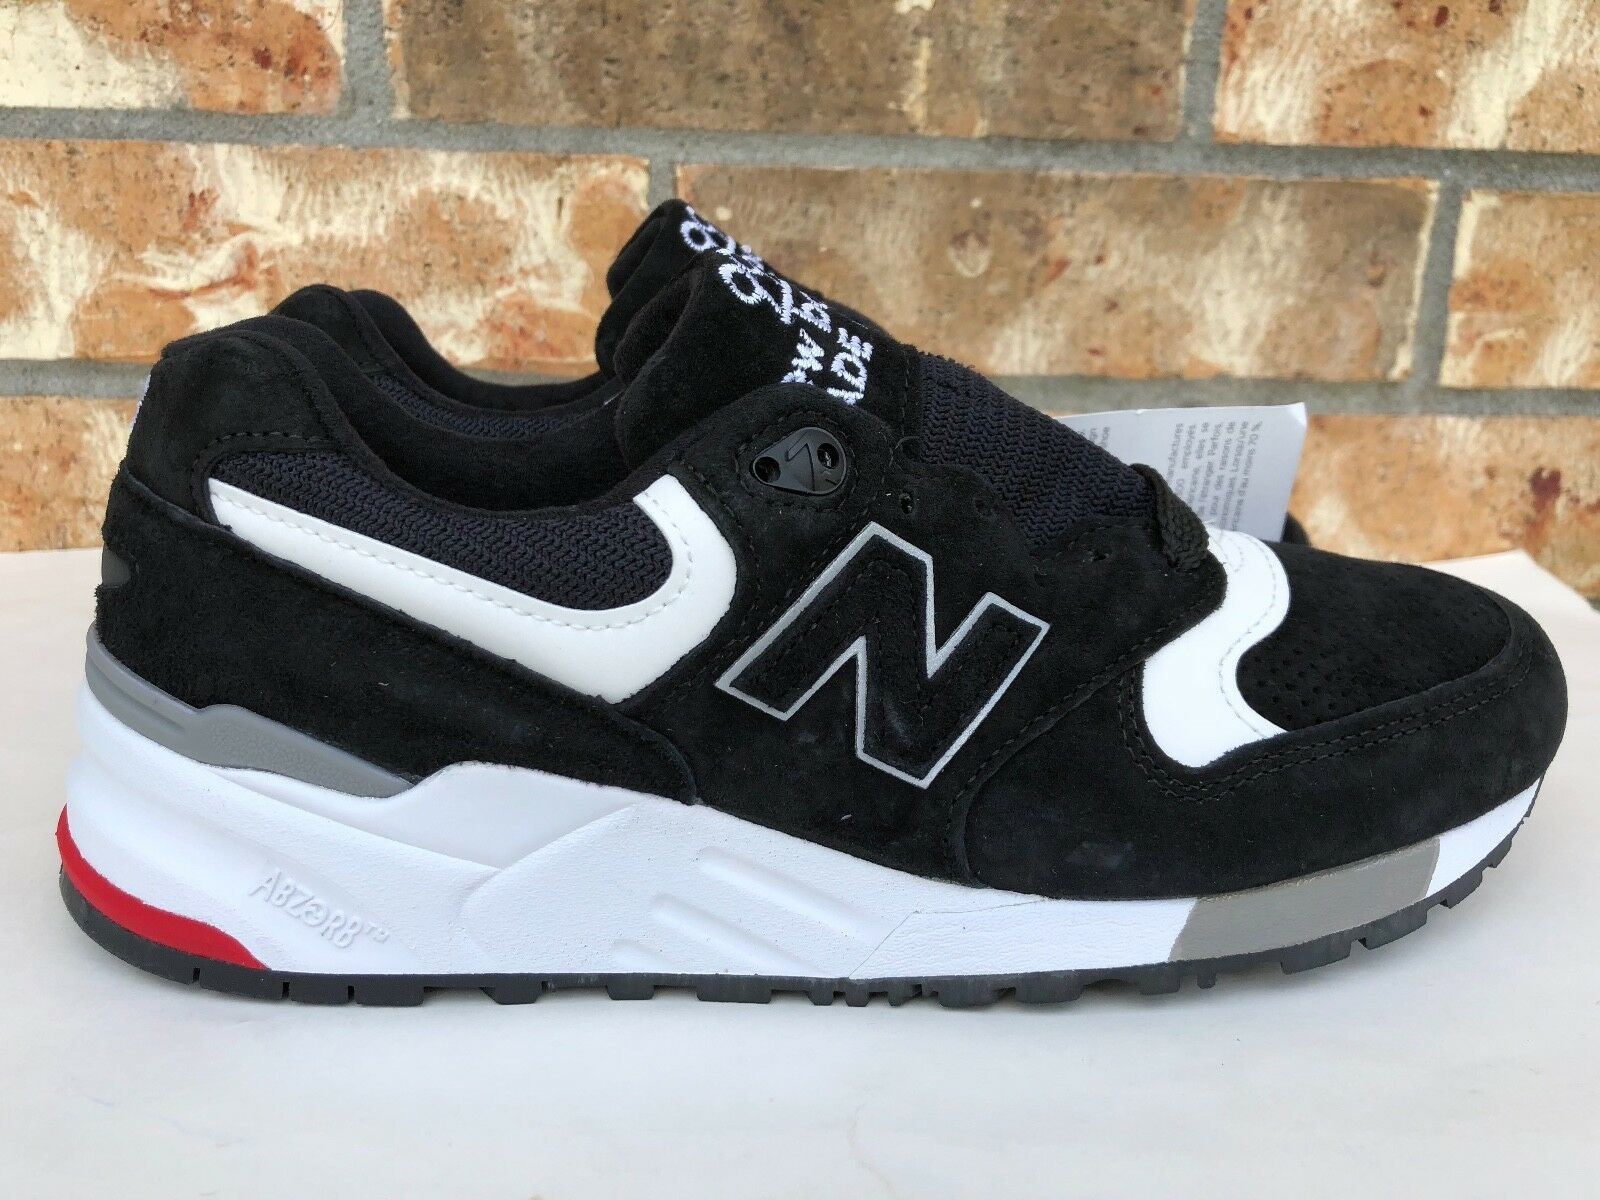 Men's New Balance 999 Made In USA Running shoes Black White Red Size 6 M999CRK